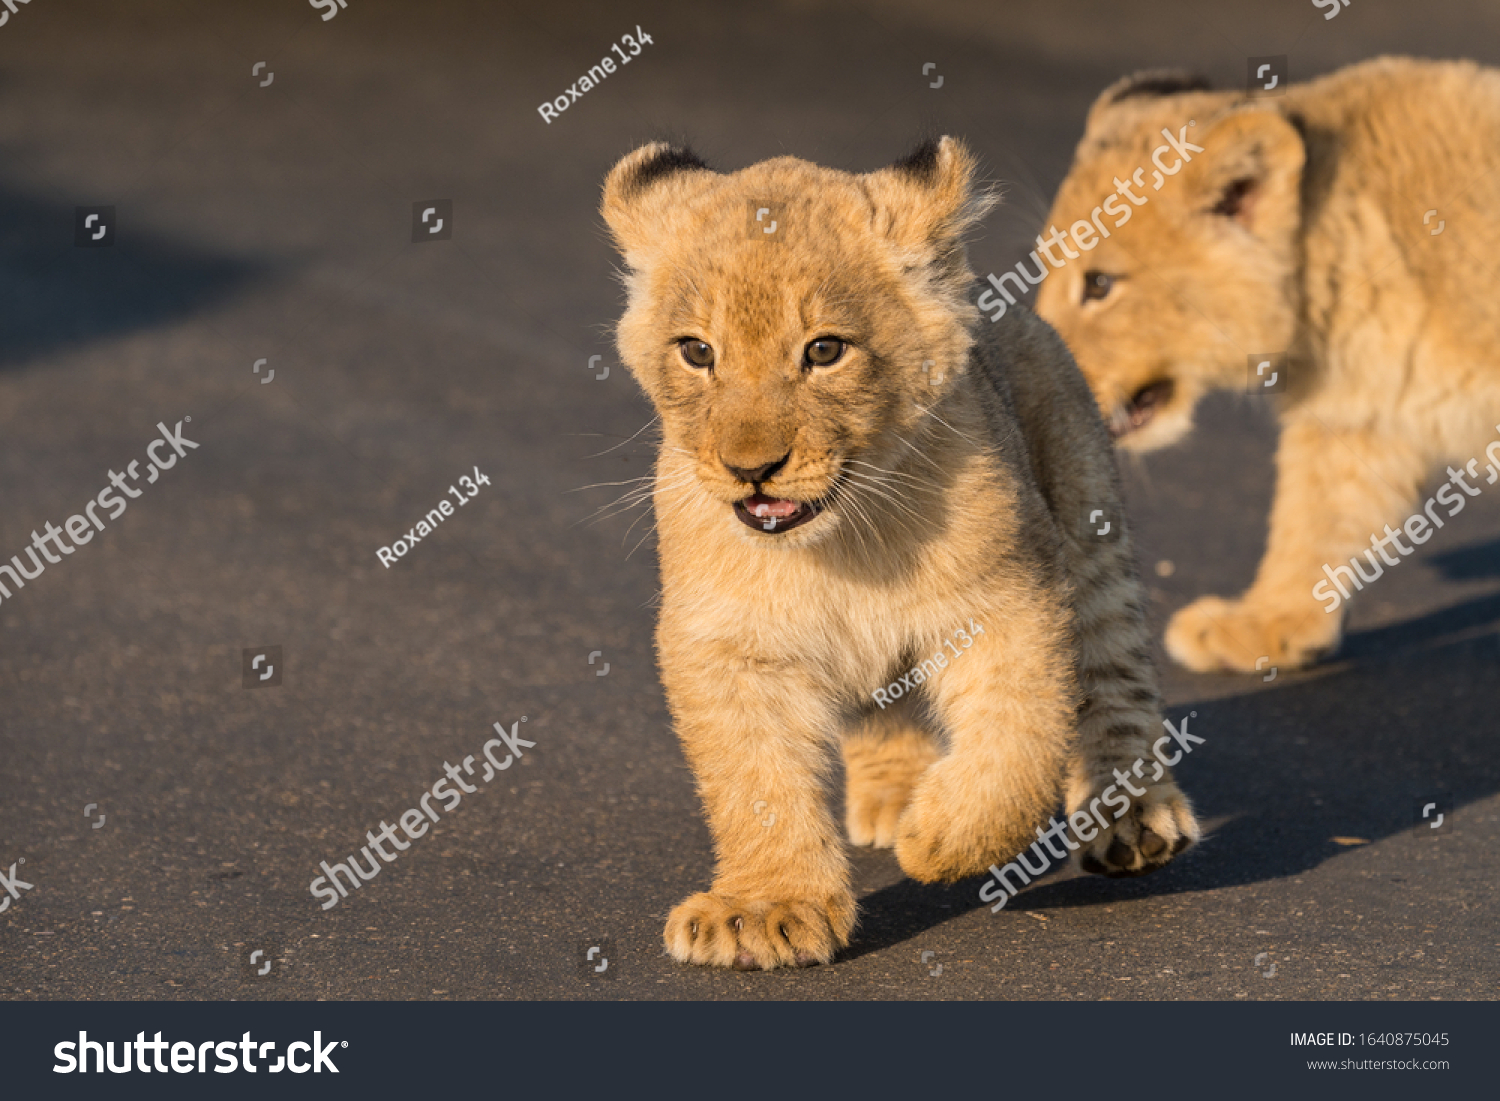 stock-photo-cute-and-adorable-baby-lion-